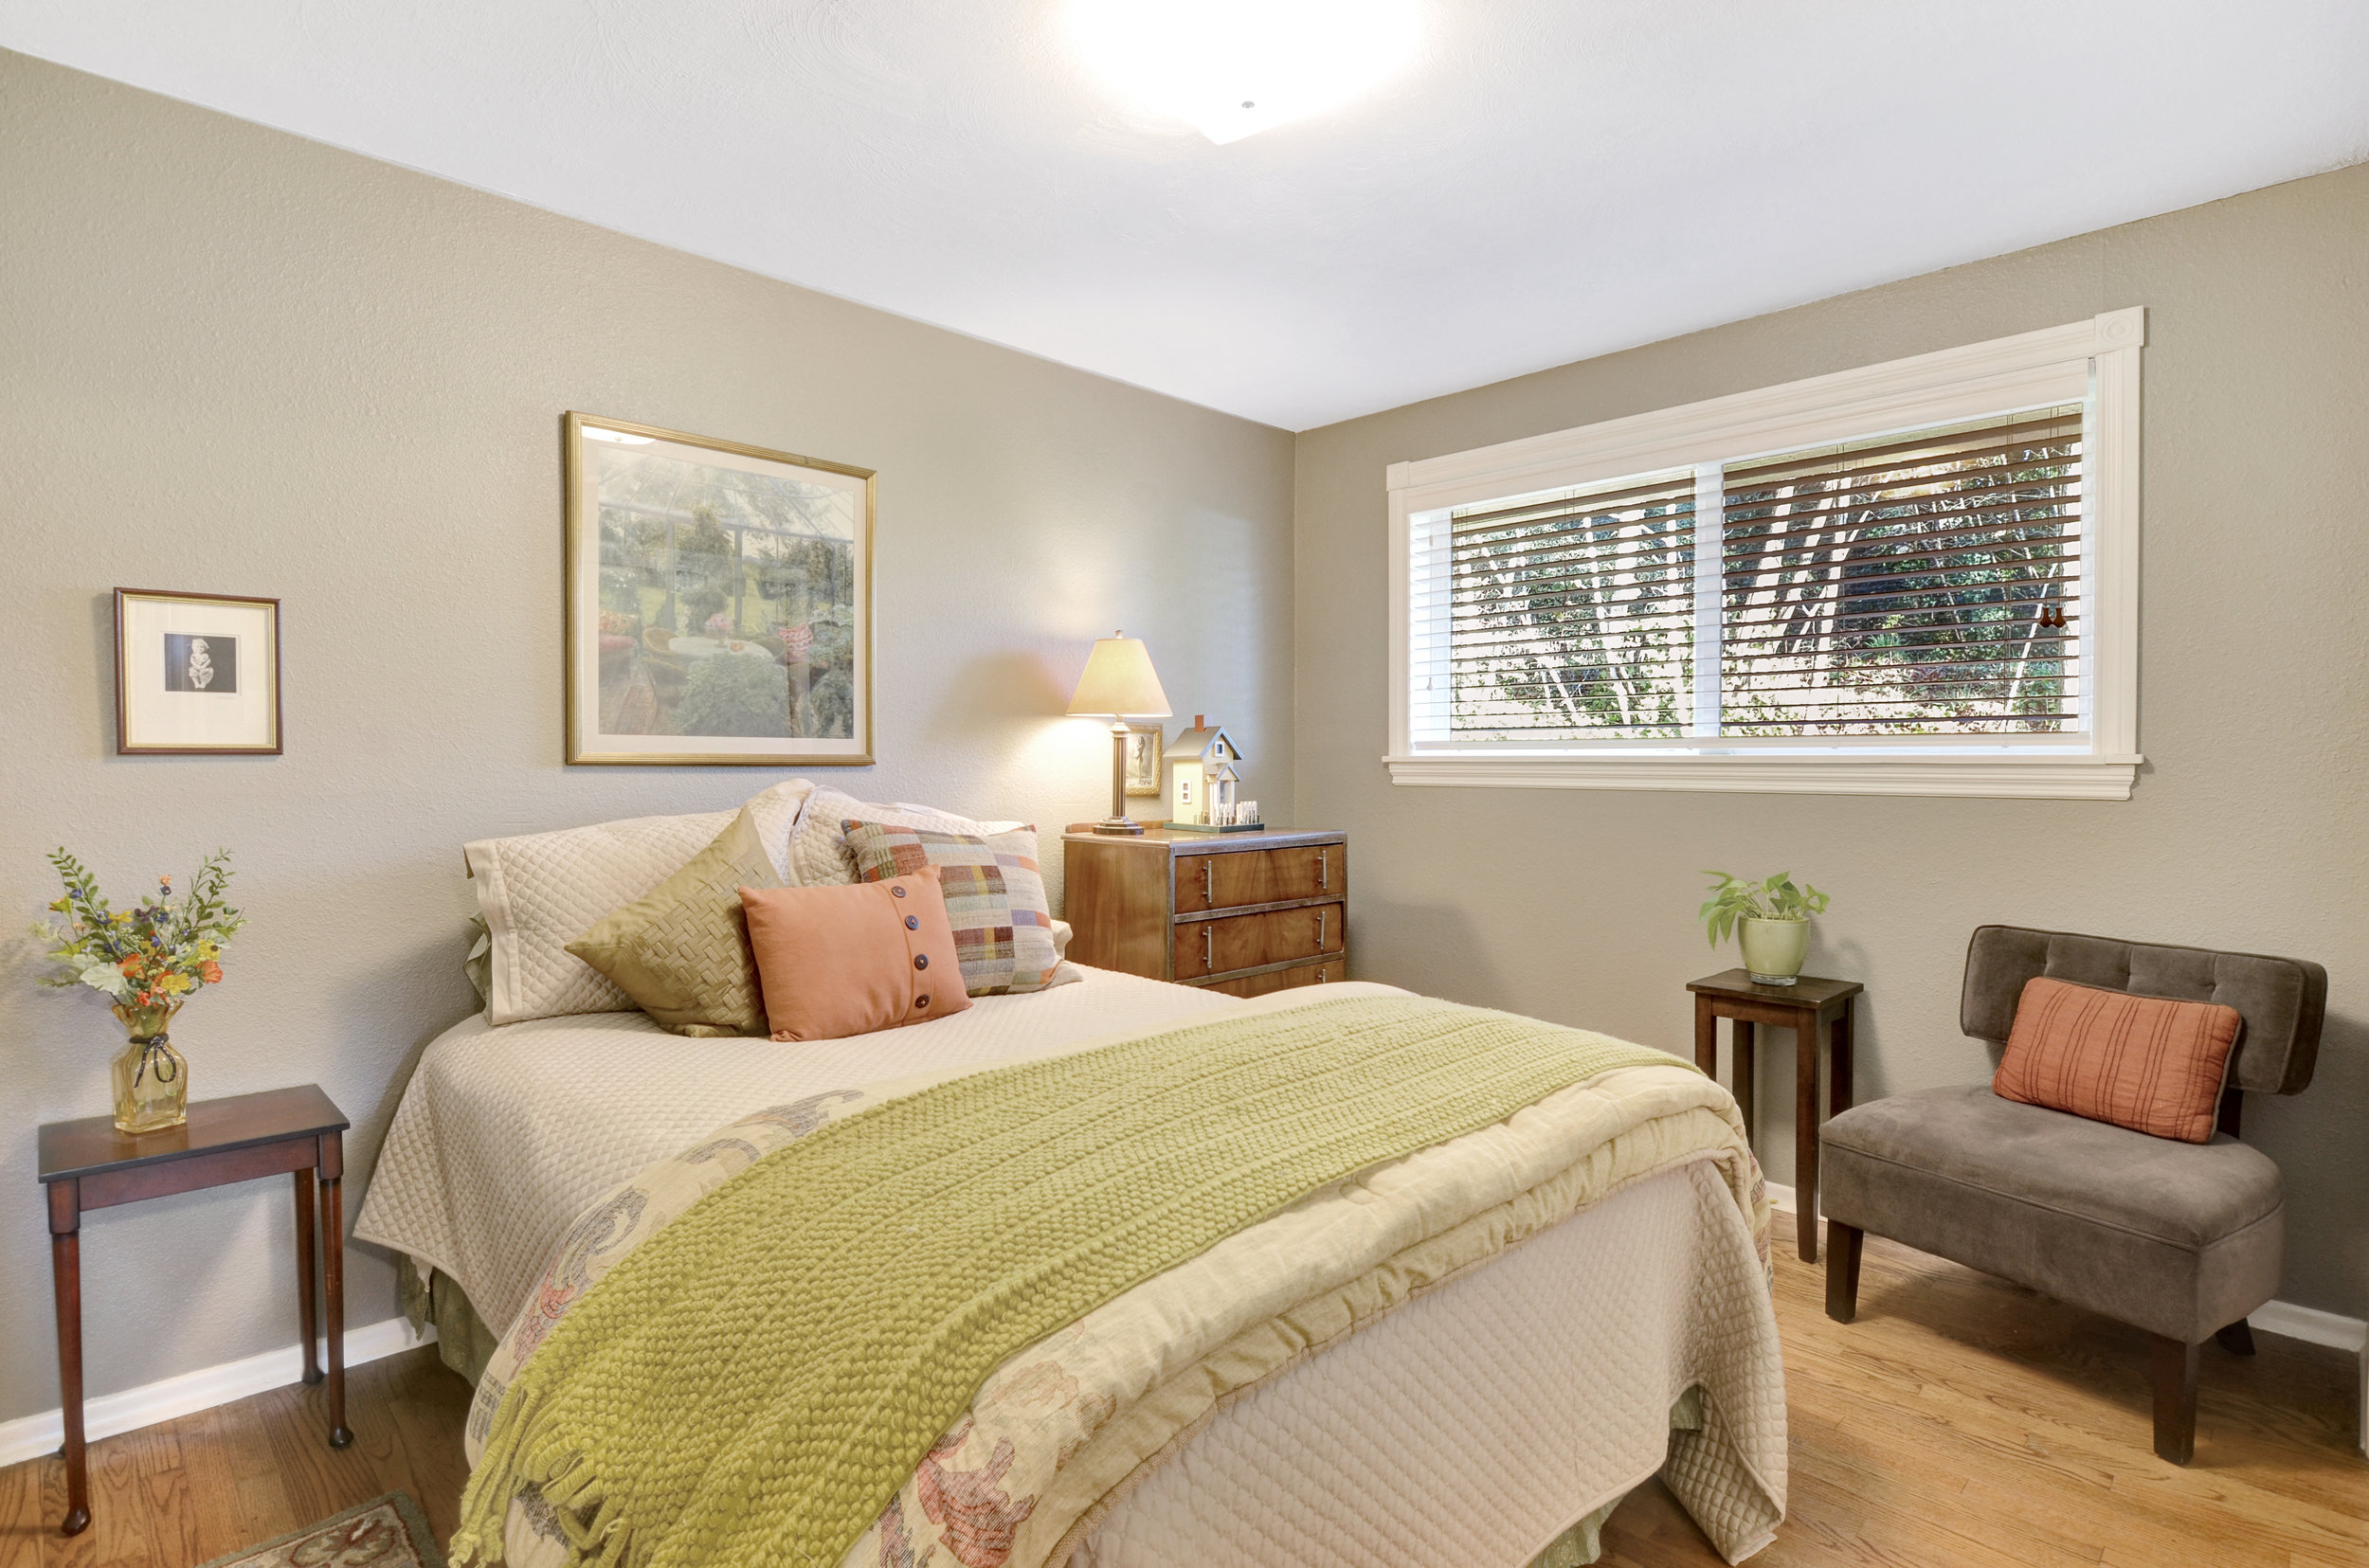 Another fresh and comfortable bedroom with original oak floors, window light, and crisp paint. Find this bedroom with its spacious closet at the end of the hall leading from the front living room.